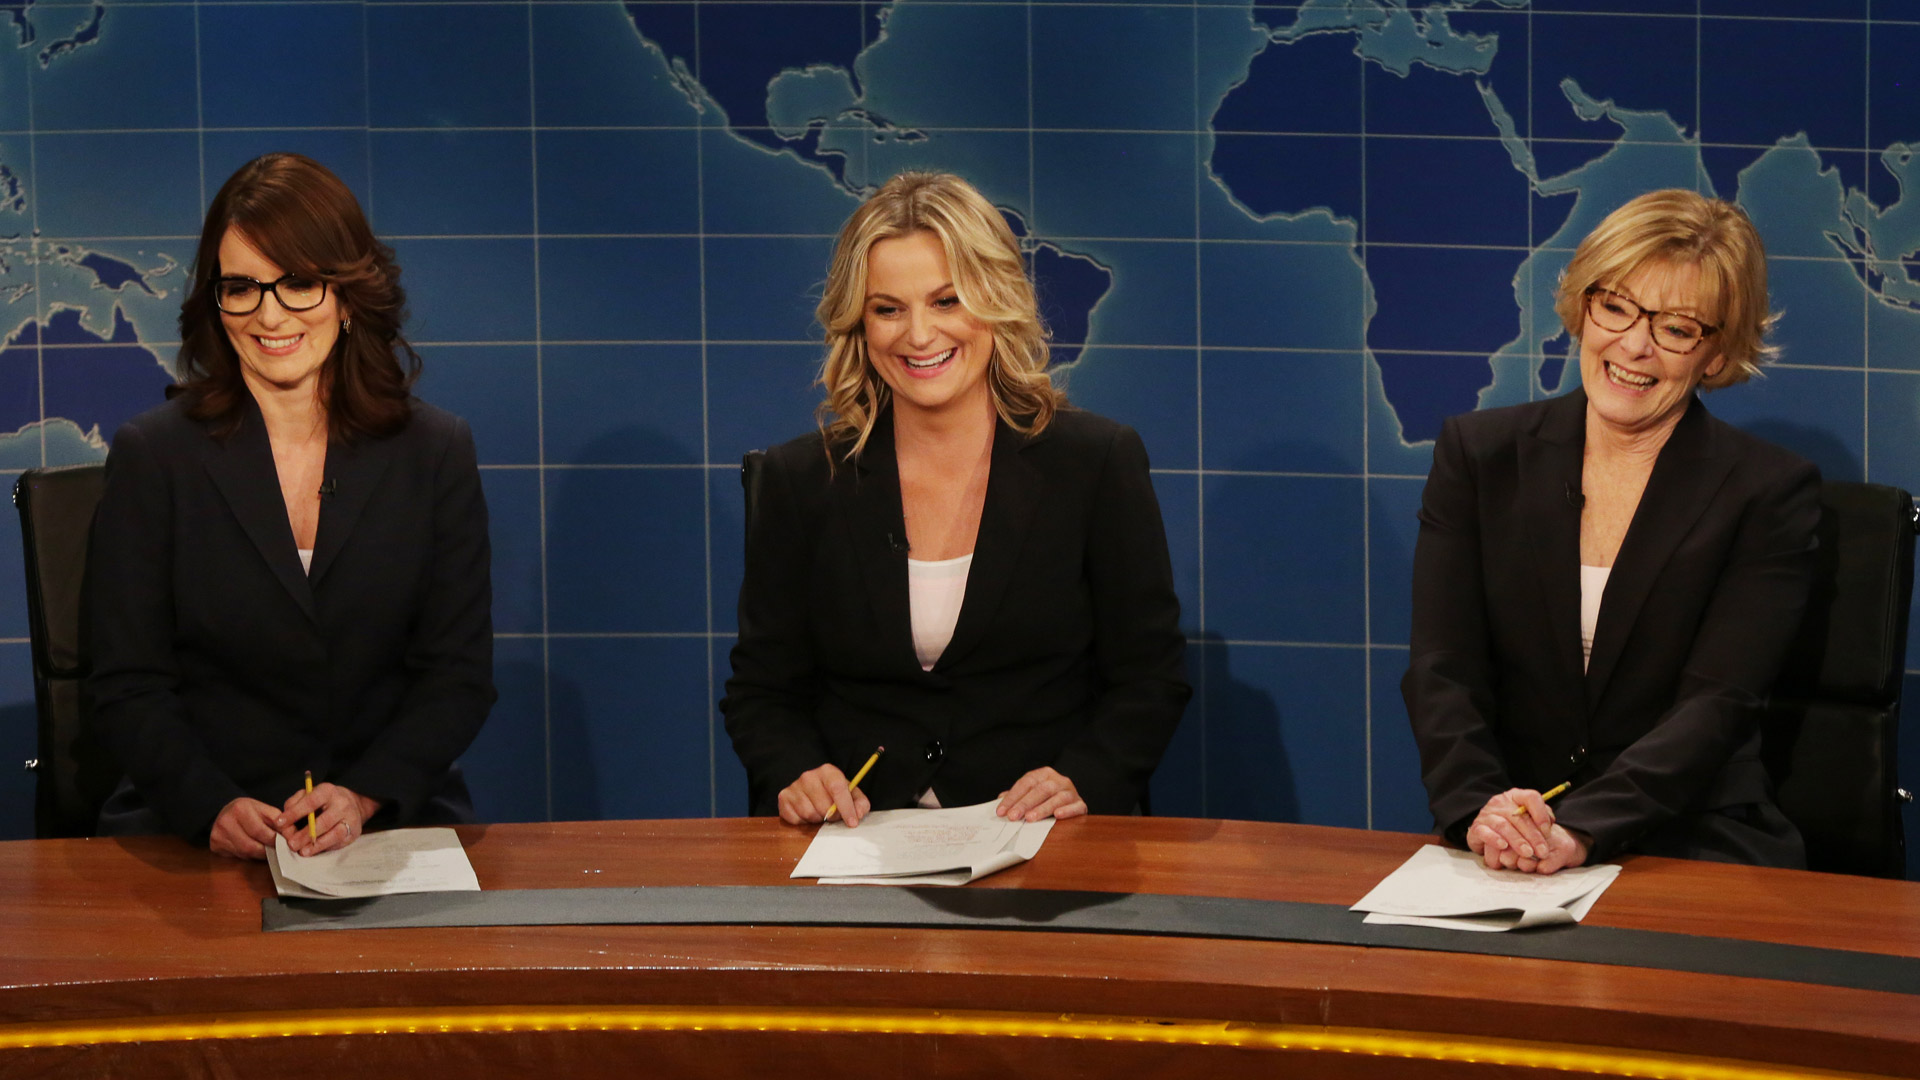 Watch SNL40: Weekend Update with Tina Fey, Amy Poehler and Jane ...